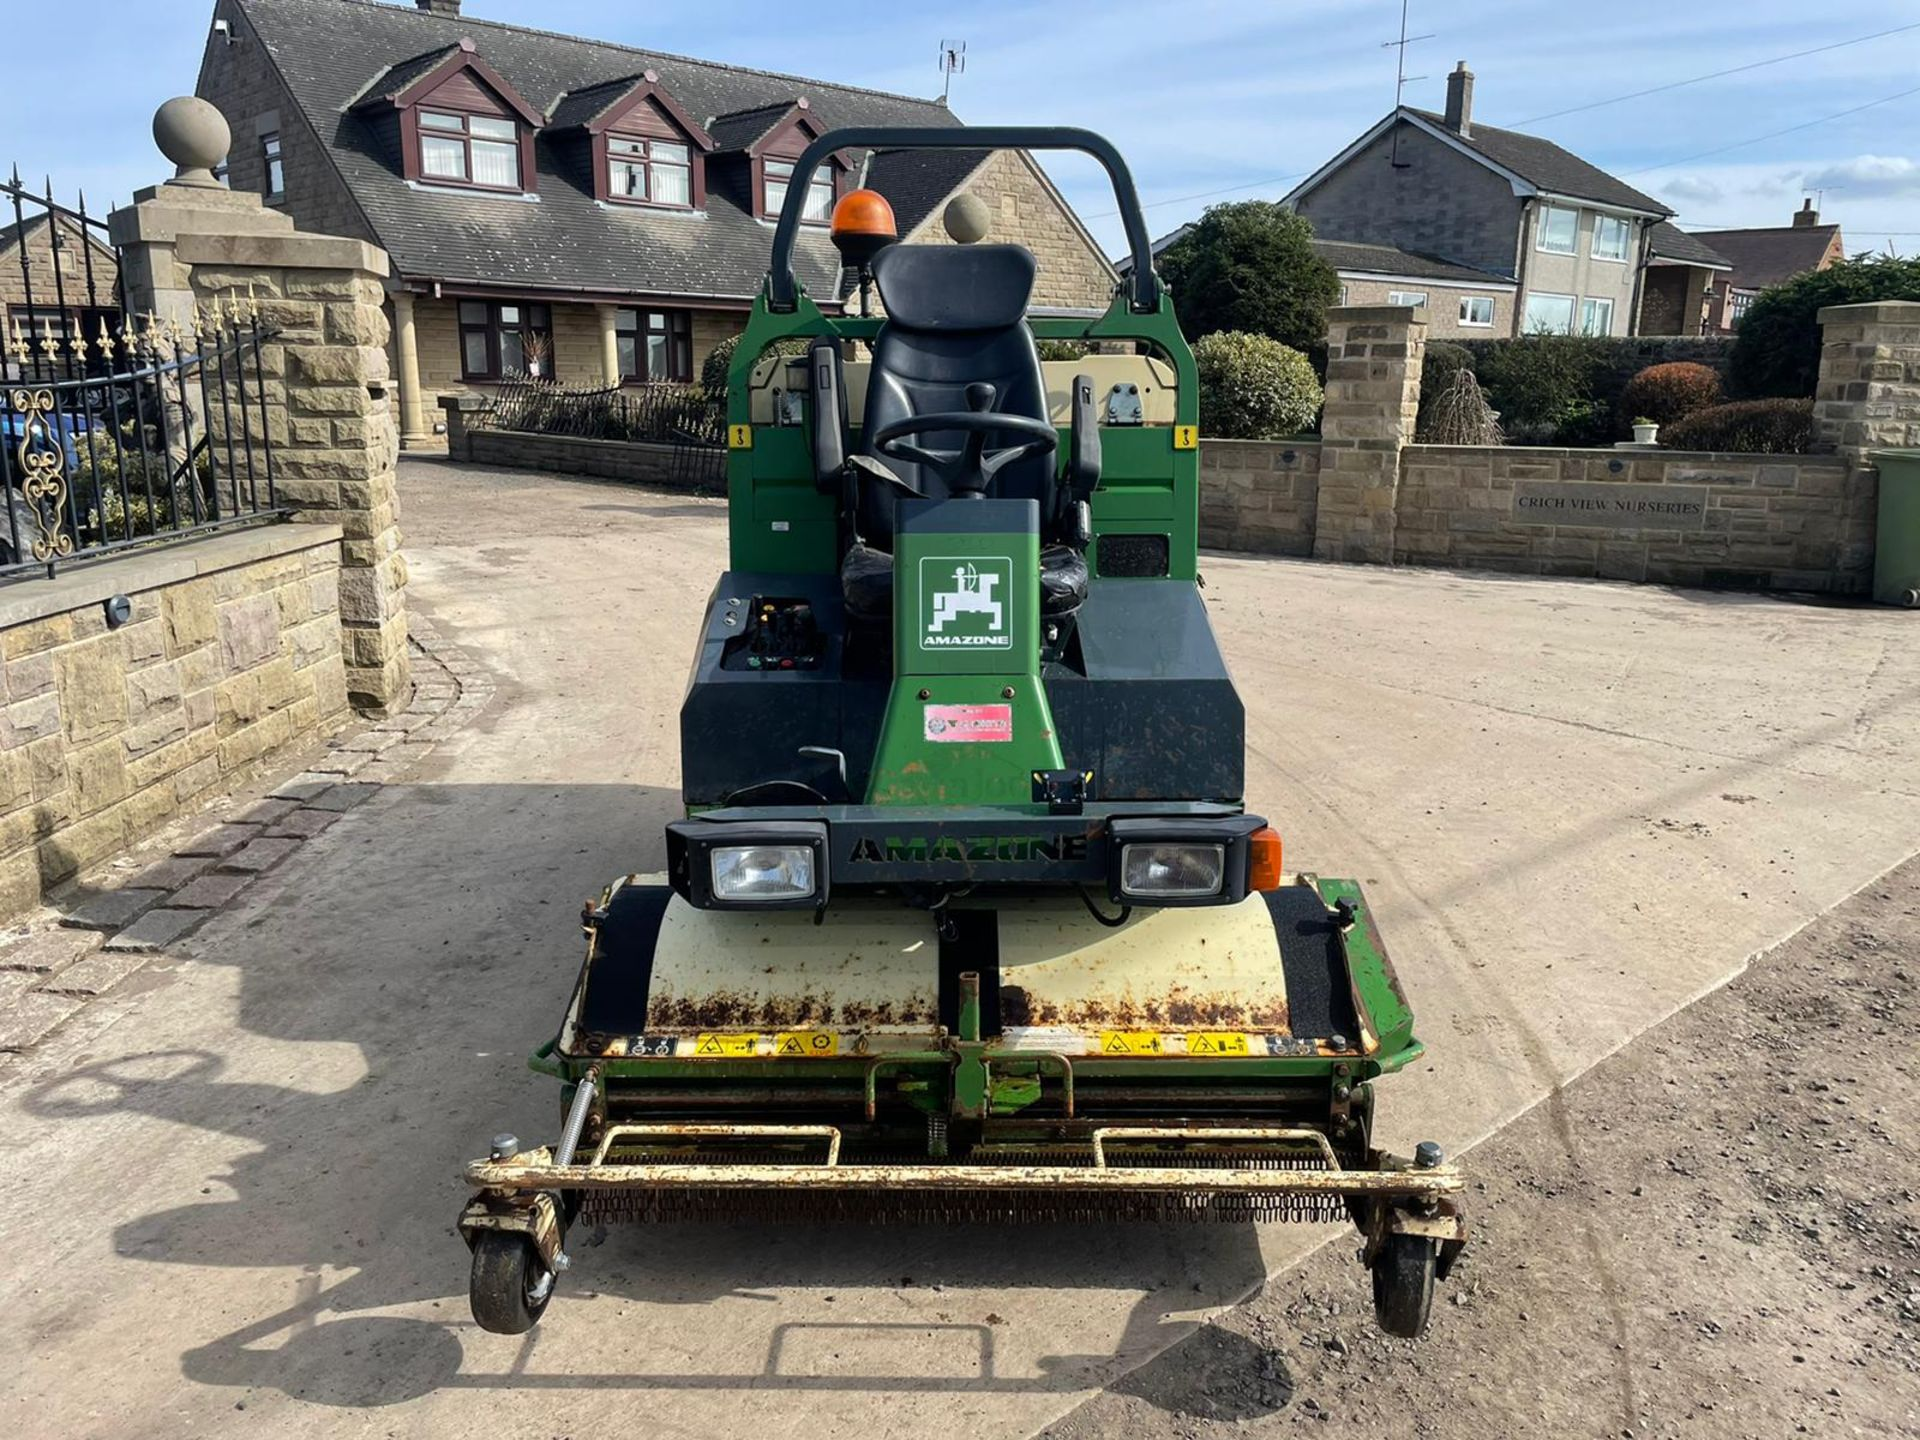 2012 AMAZONE PROFIHOPPER RIDE ON MOWER, RUNS, DRIVES AND CUTS, IN GOOD CONDITION *PLUS VAT* - Image 3 of 14